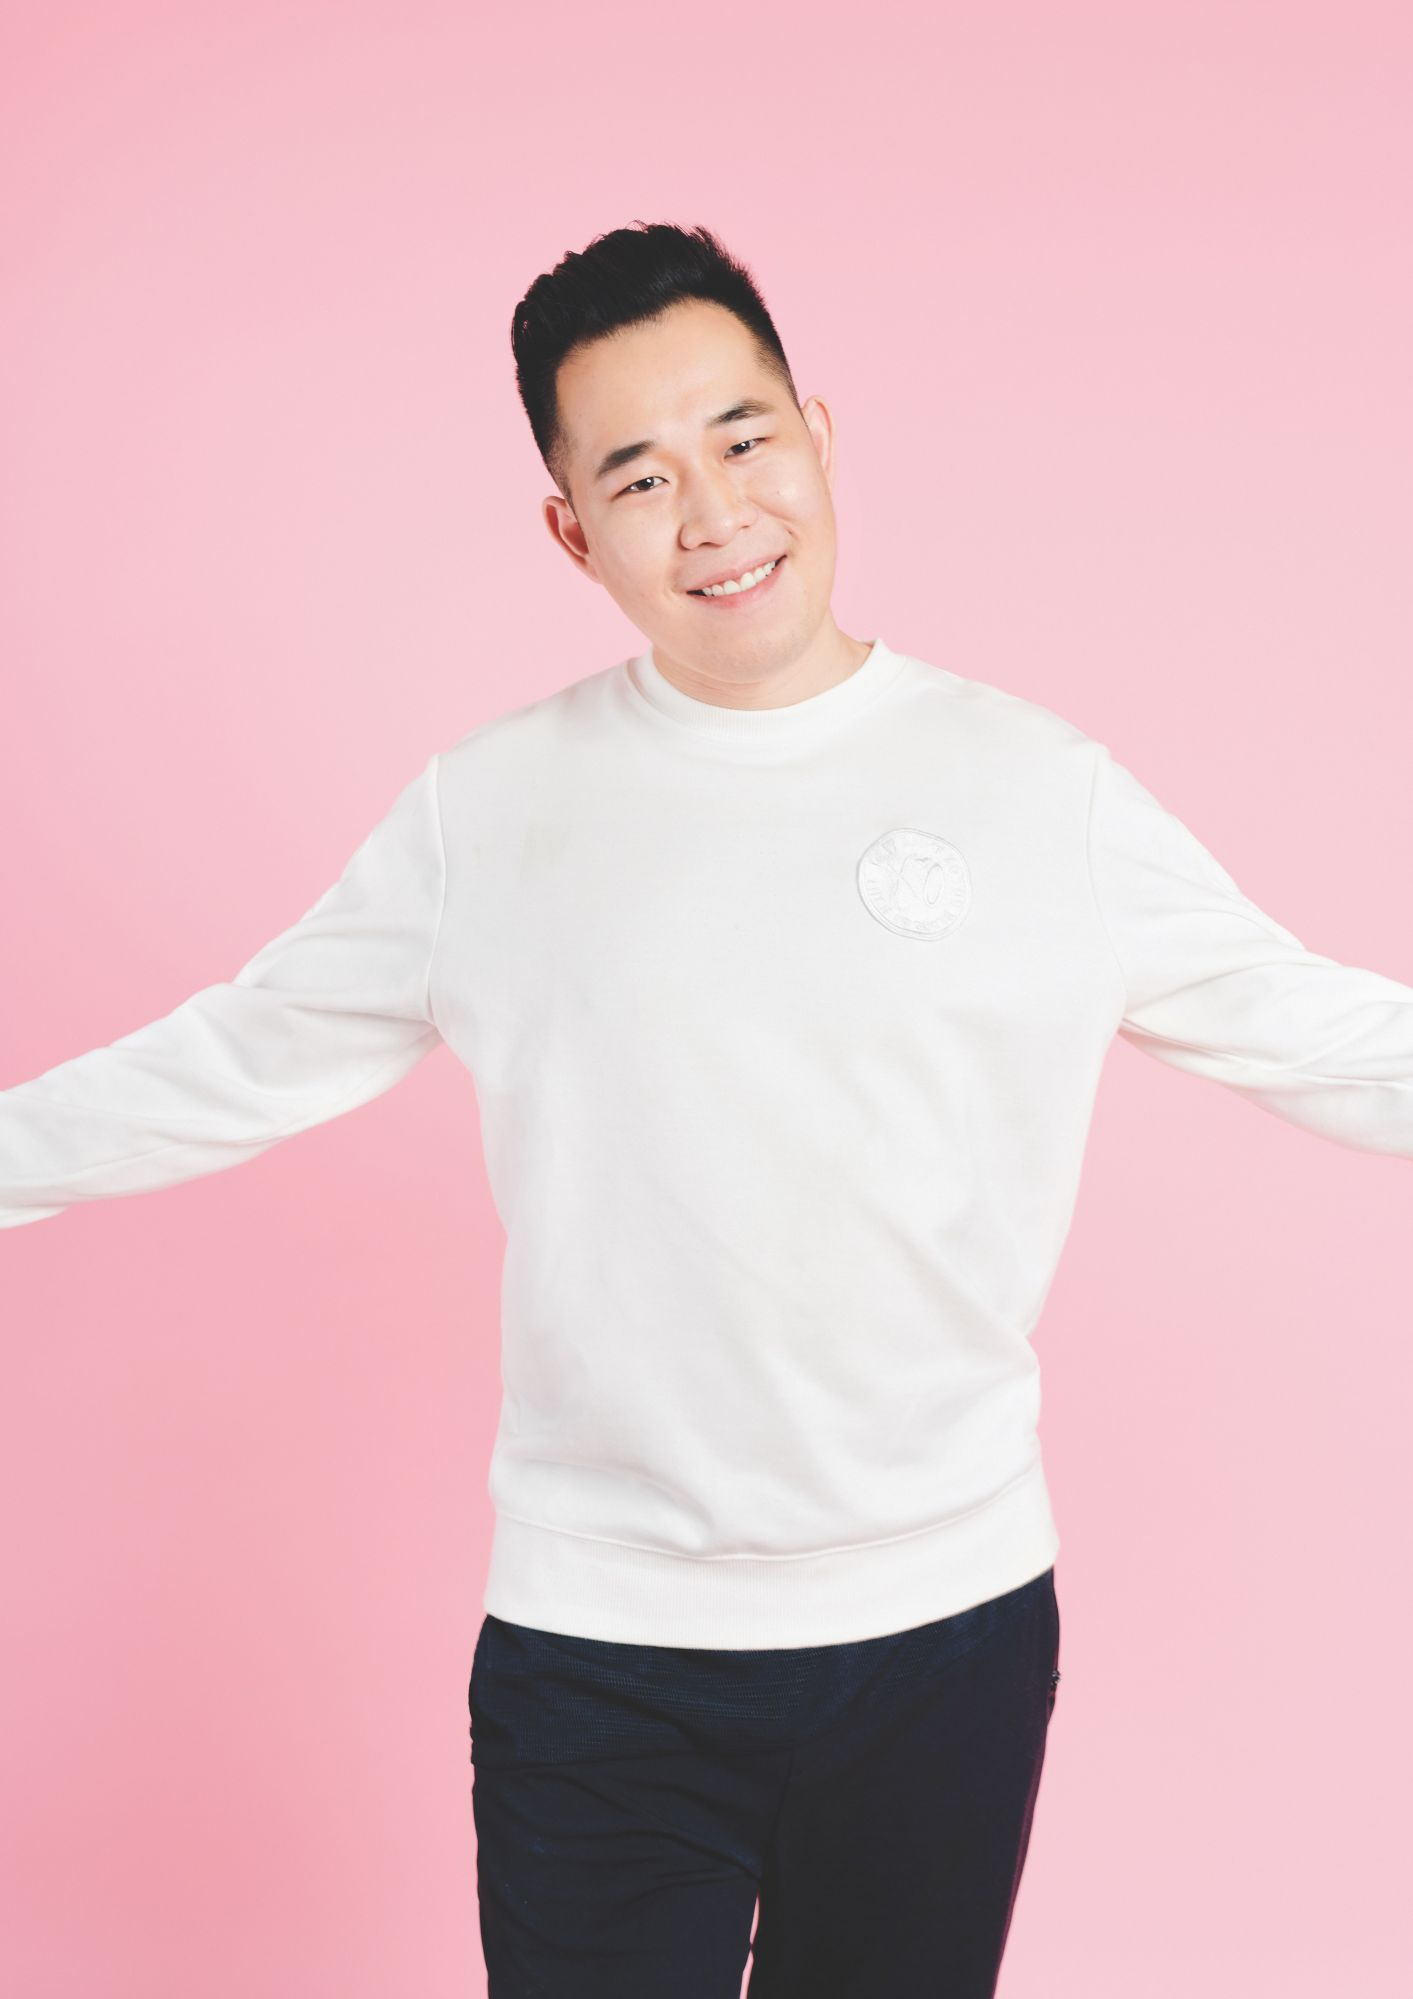 What Matters To Me: Andy Chan